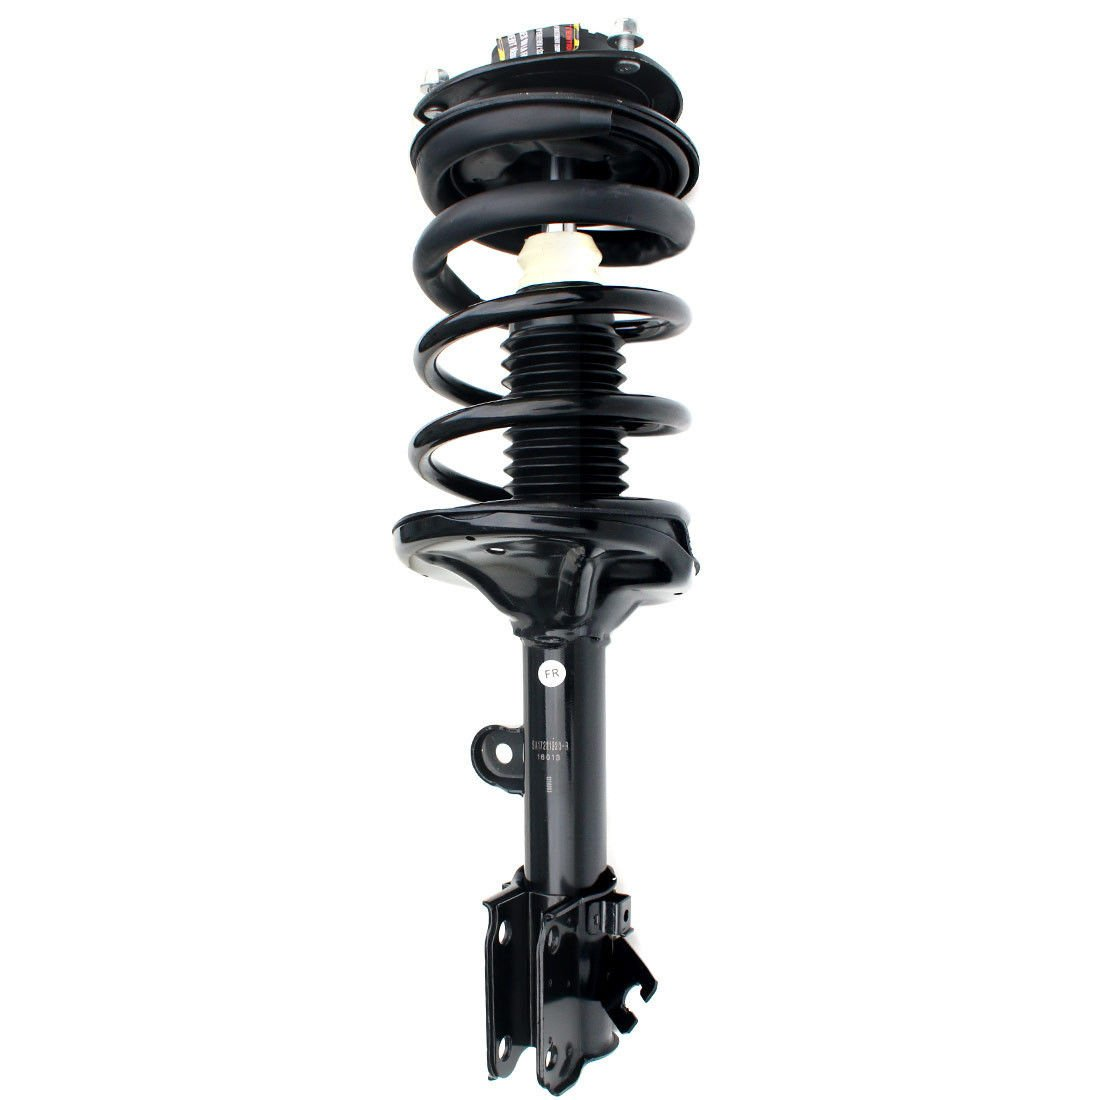 DTA 50149 Front Complete Strut Assemblies With Springs and Mounts Ready to Install OE Replacement 2-pc Pair Fits 2005-2009 Hyundai Tucson 2005-2010 Kia Sportage